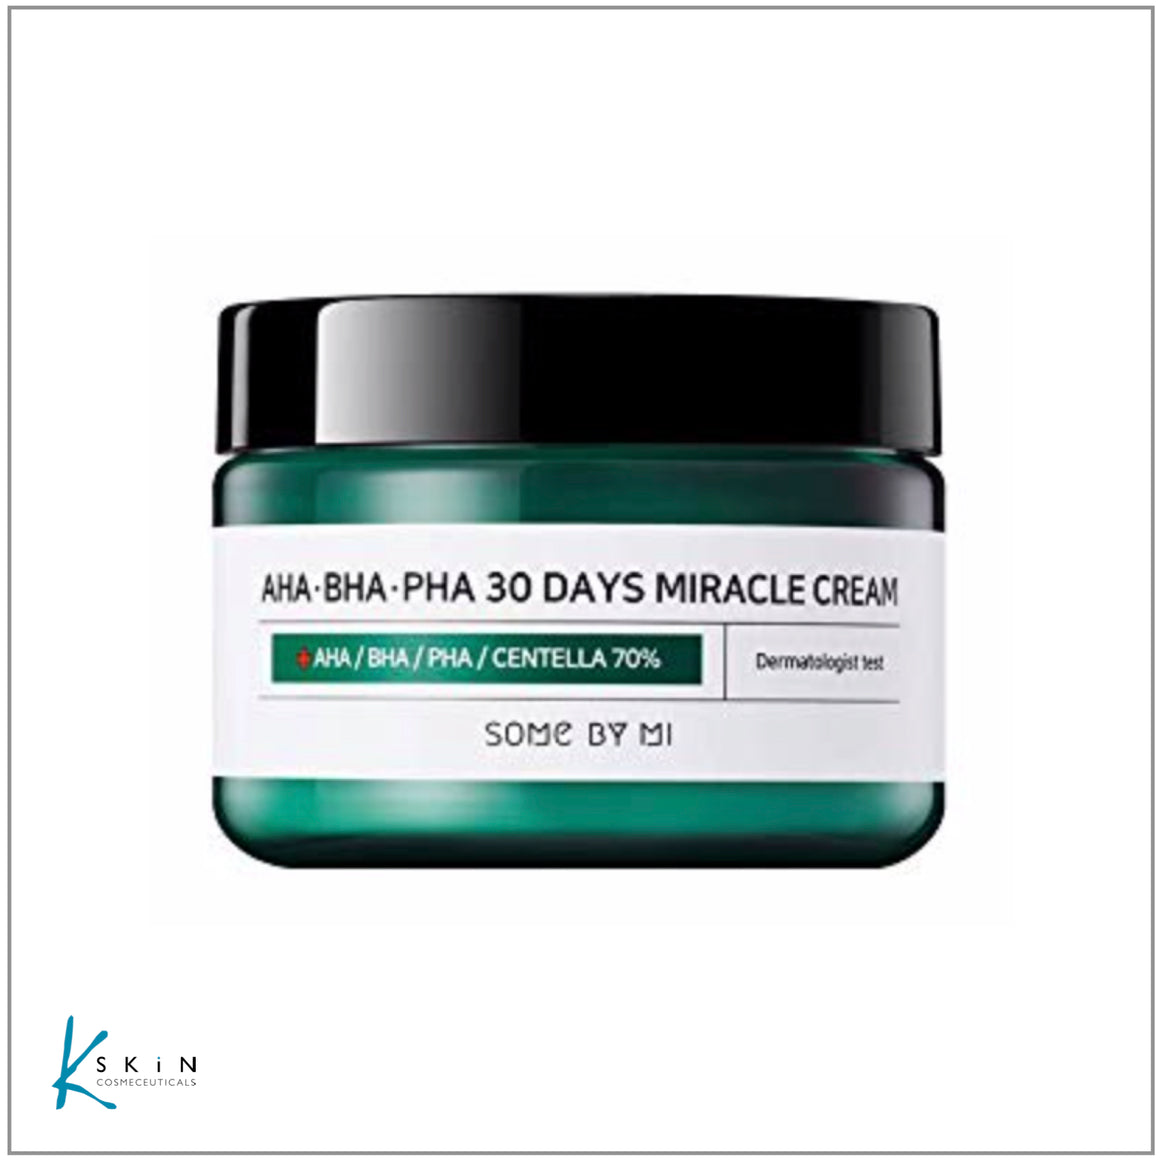 SOME BY MI Miracle Cream 60ml - www.Kskin.ie